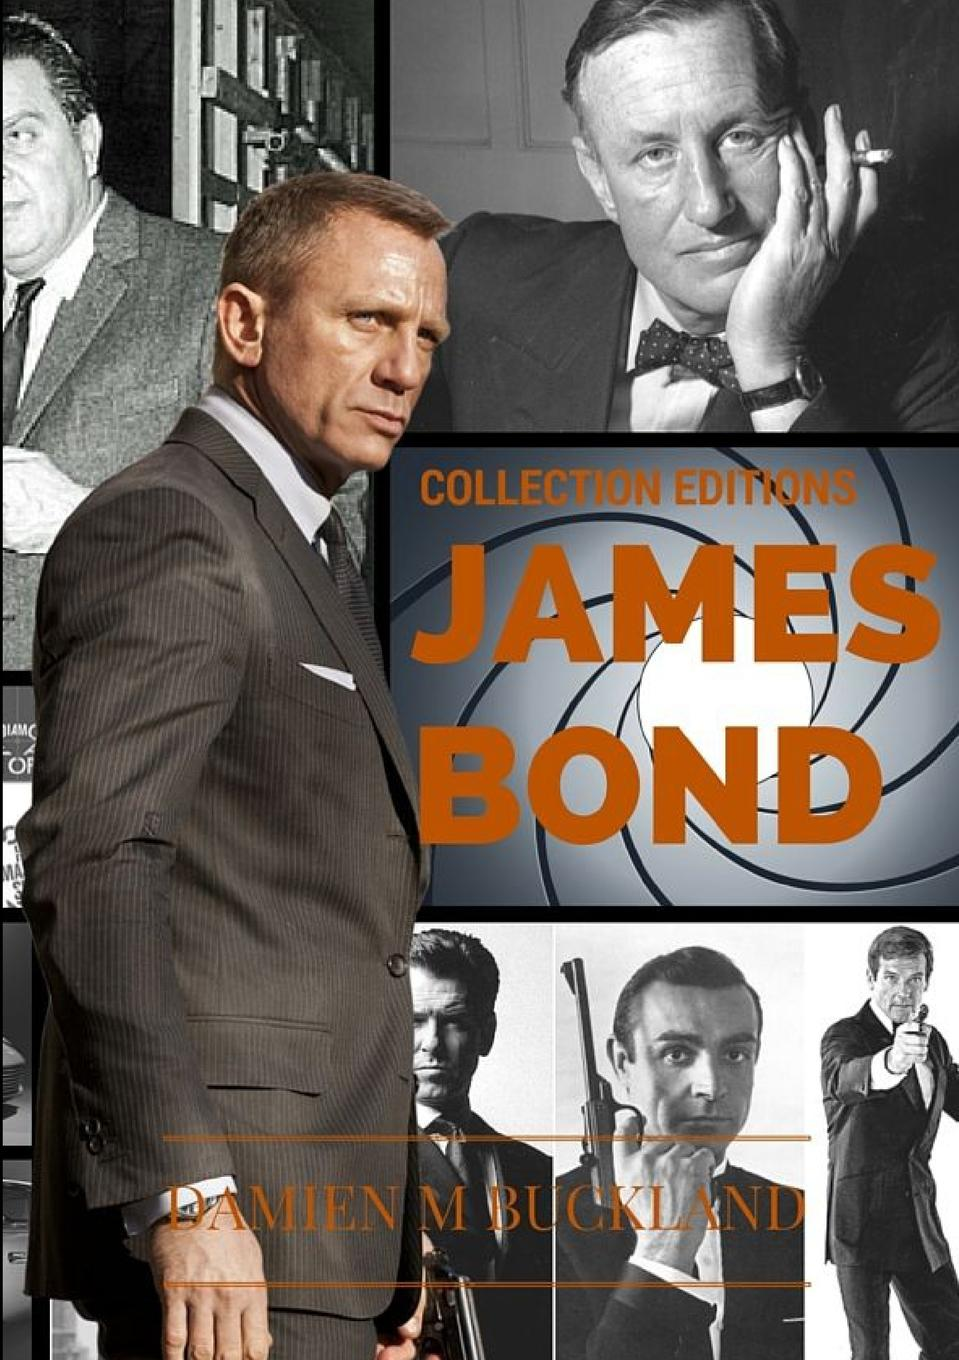 Damien Buckland Collection Editions James Bond bond by design the art of the james bond films